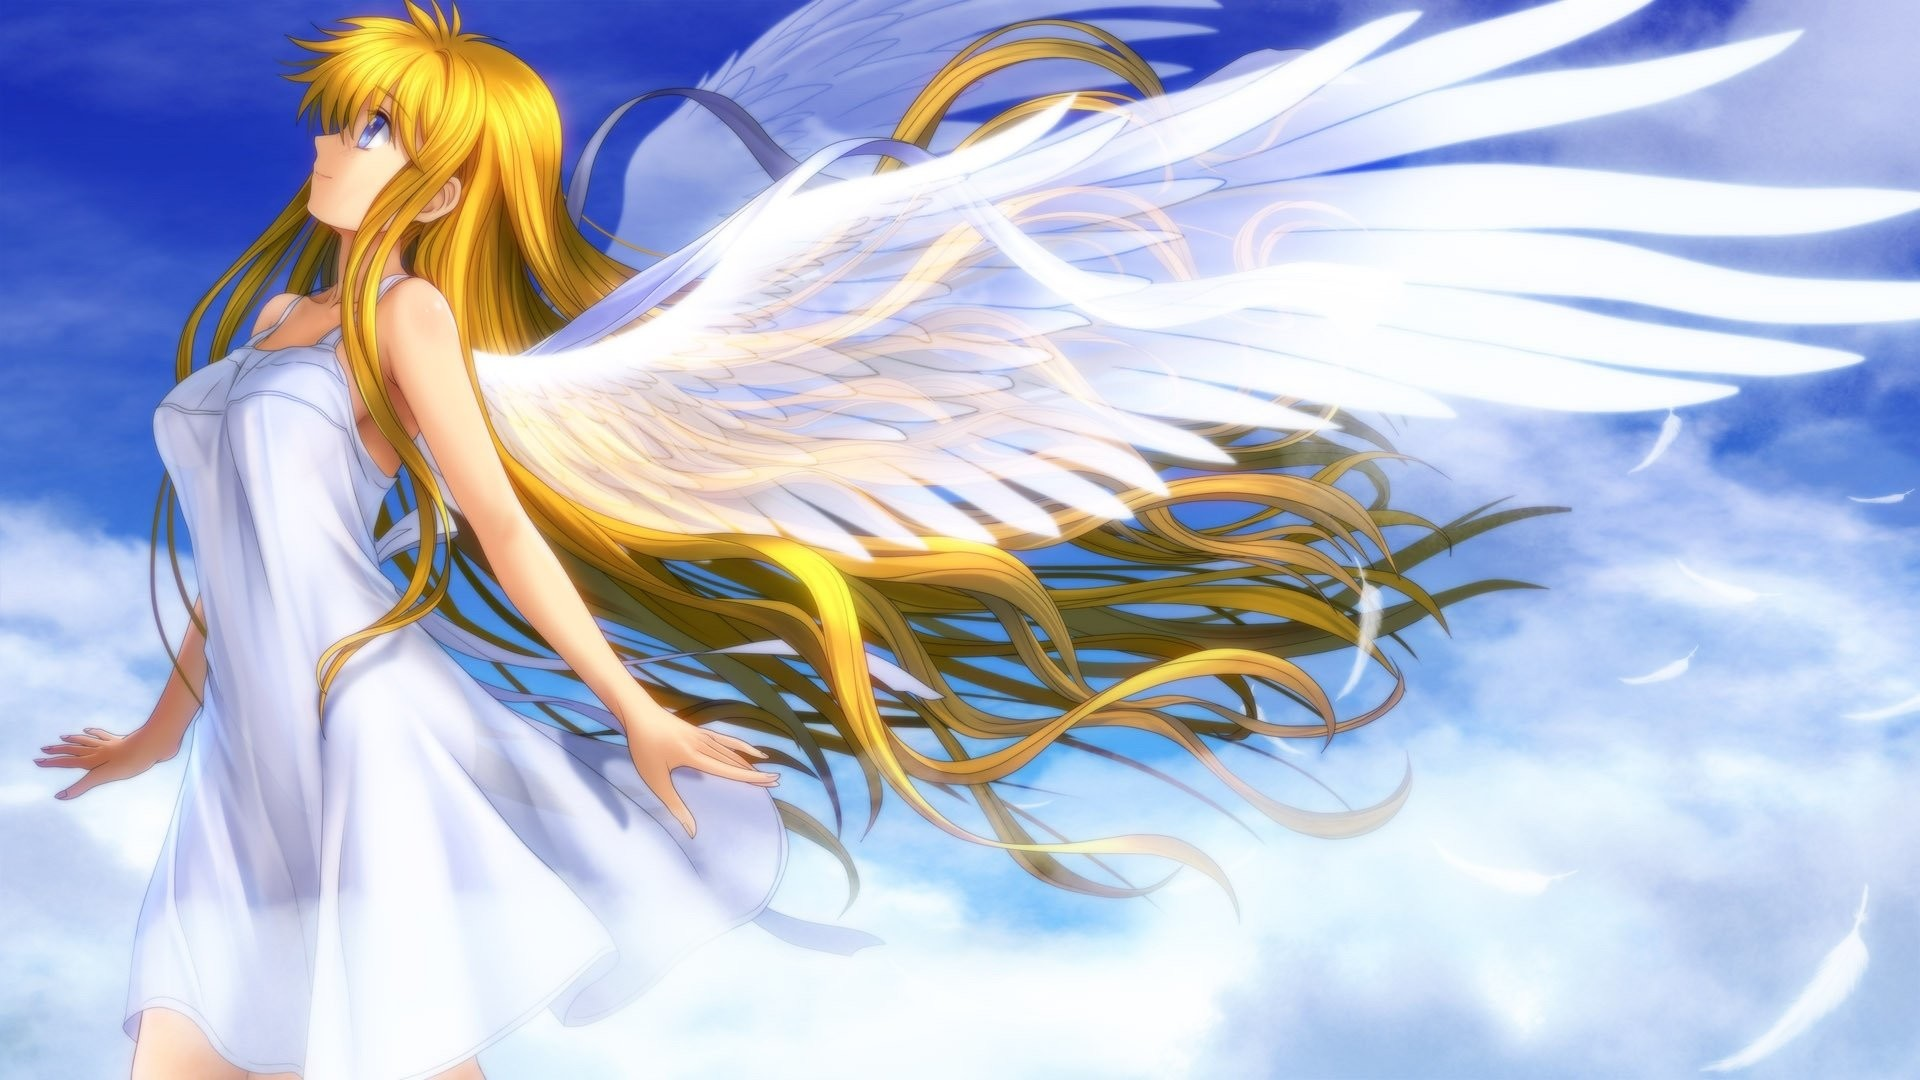 1920x1080 Anime Girl With Angel Wings